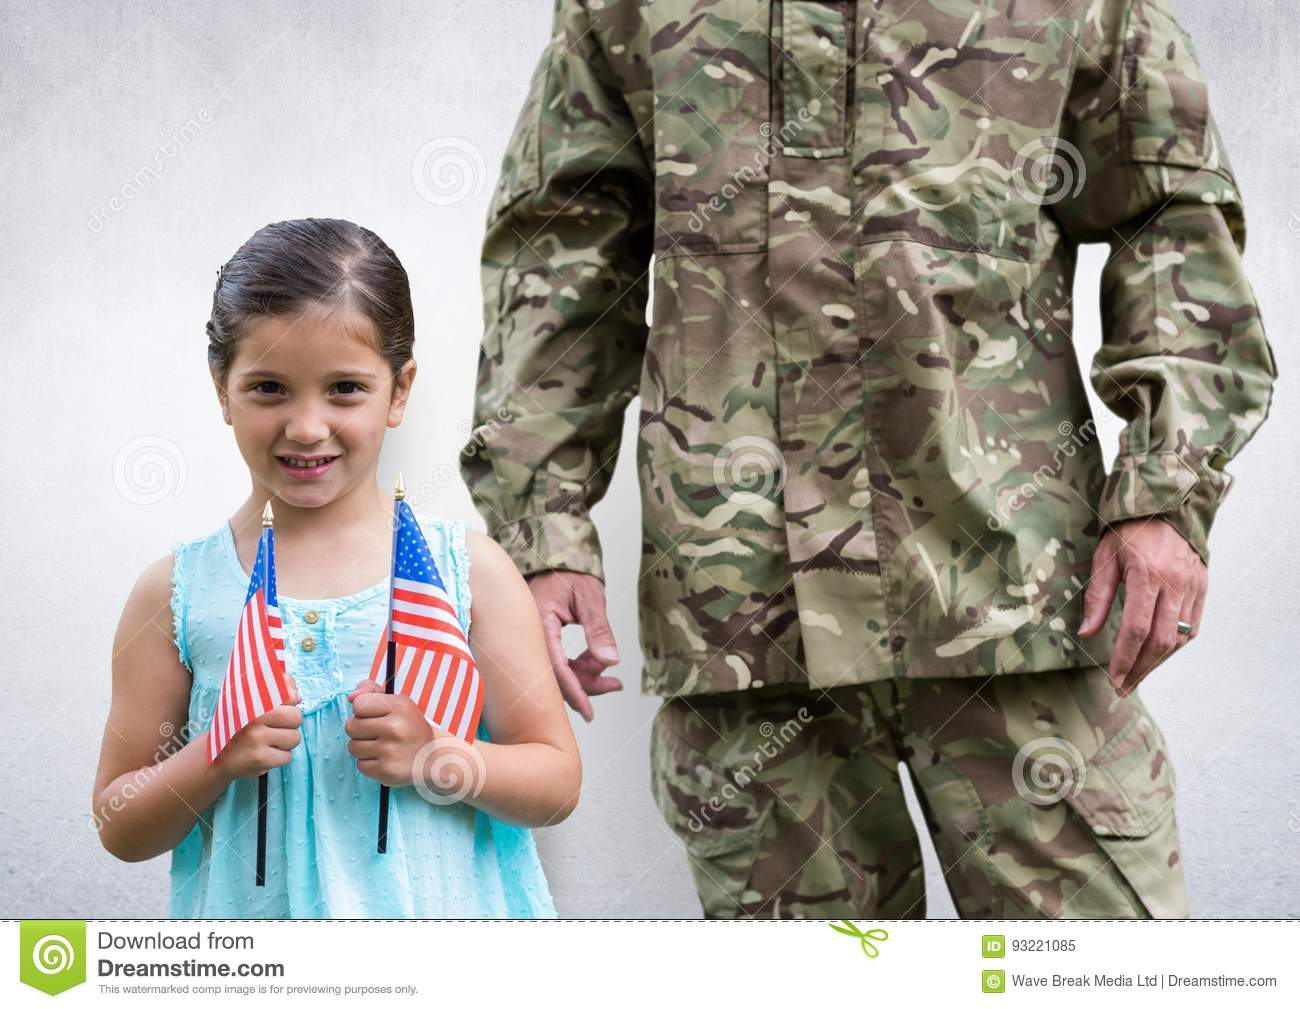 soldier and daughter with USA flags, in concrete room